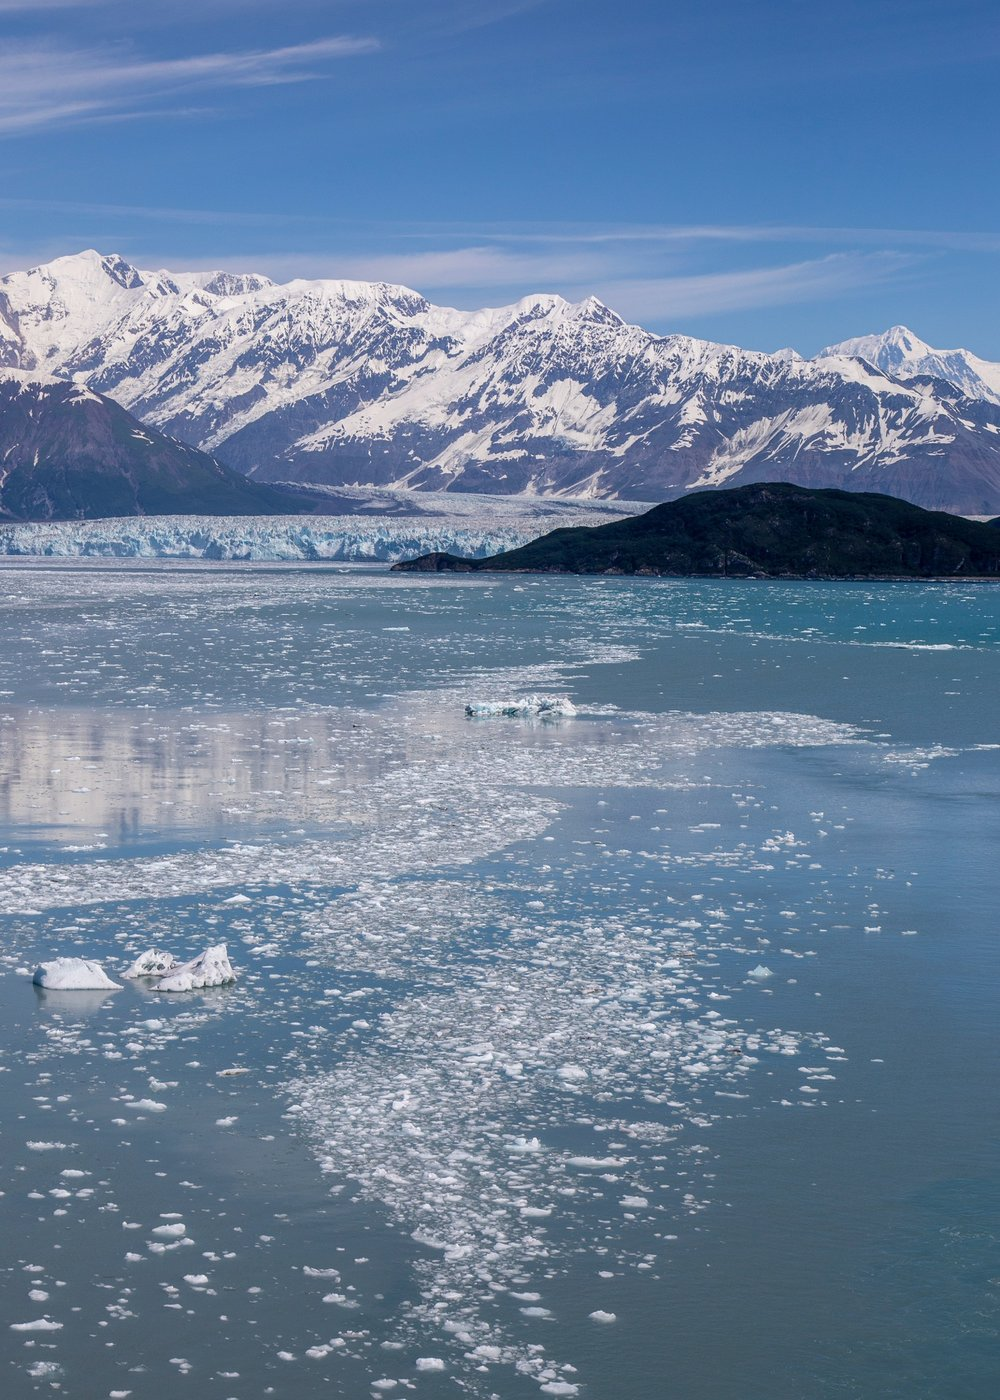 One of my favourite shots - floating ice, the glacier and the mountains that feed it all. Such an amazing view.